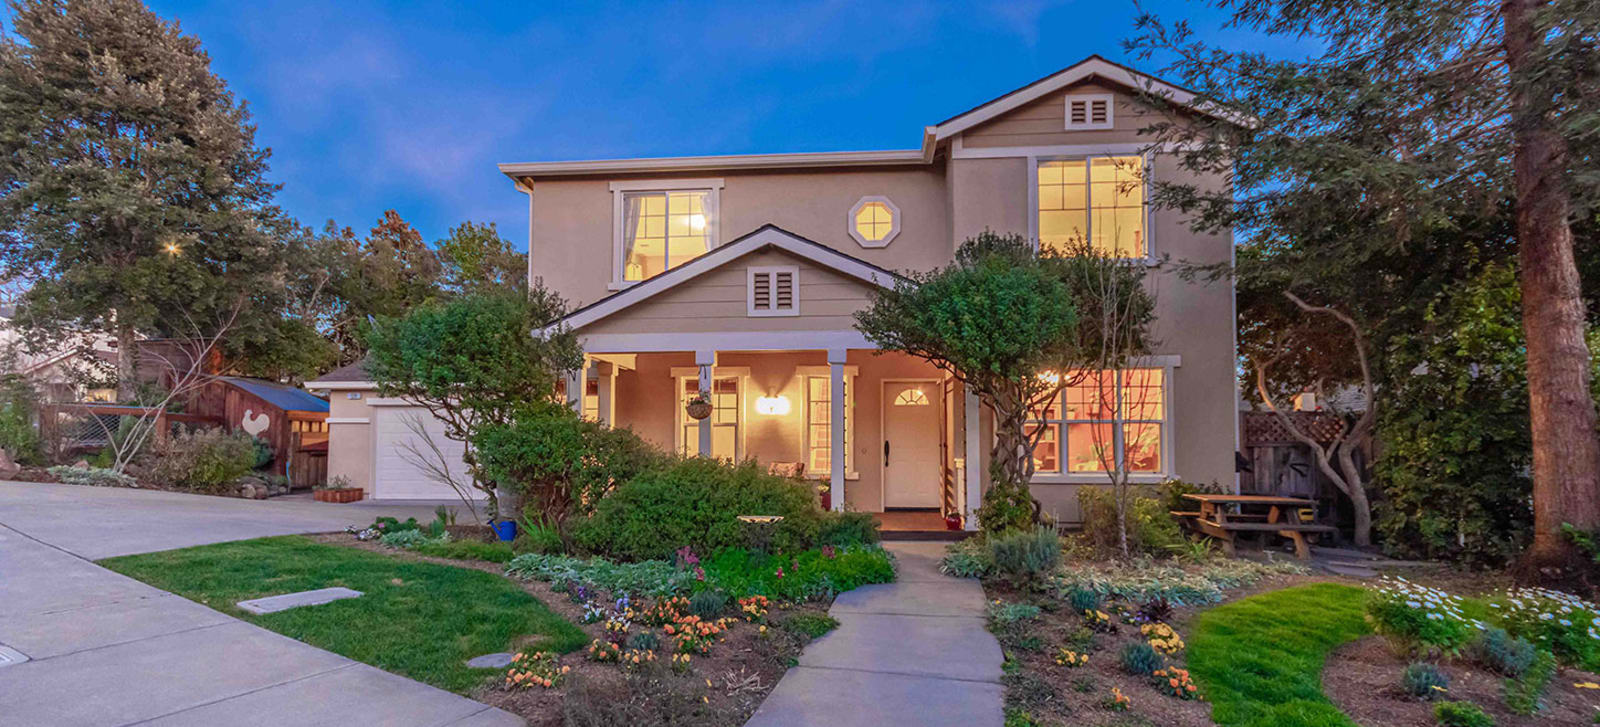 Find Luxury Real Estate in Napa | Corcoran Global Living